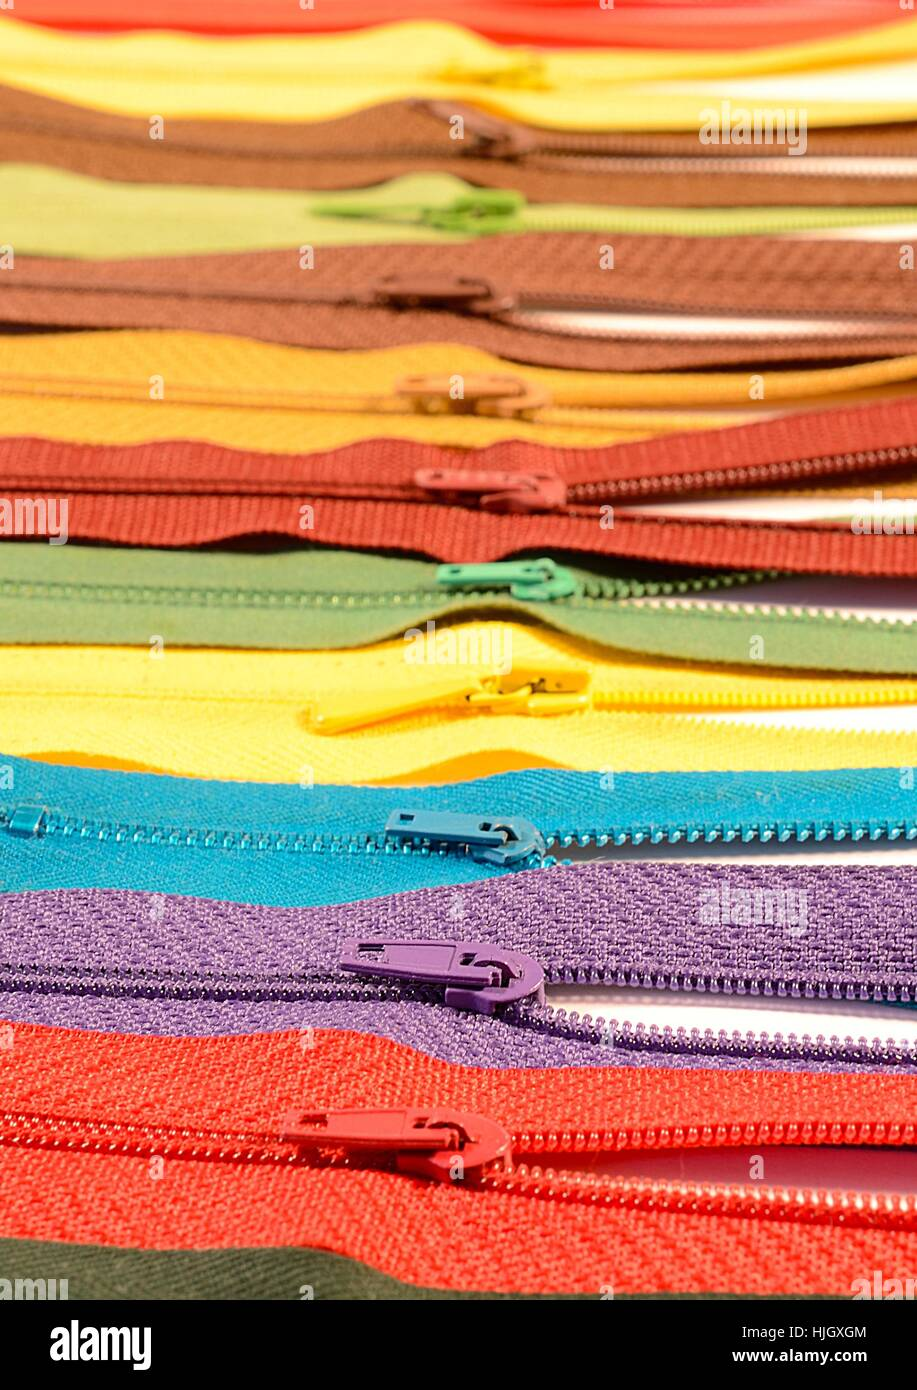 clothing, fabric, tailoring, zippers, zip, clothes, sale, clothing, fabric, - Stock Image